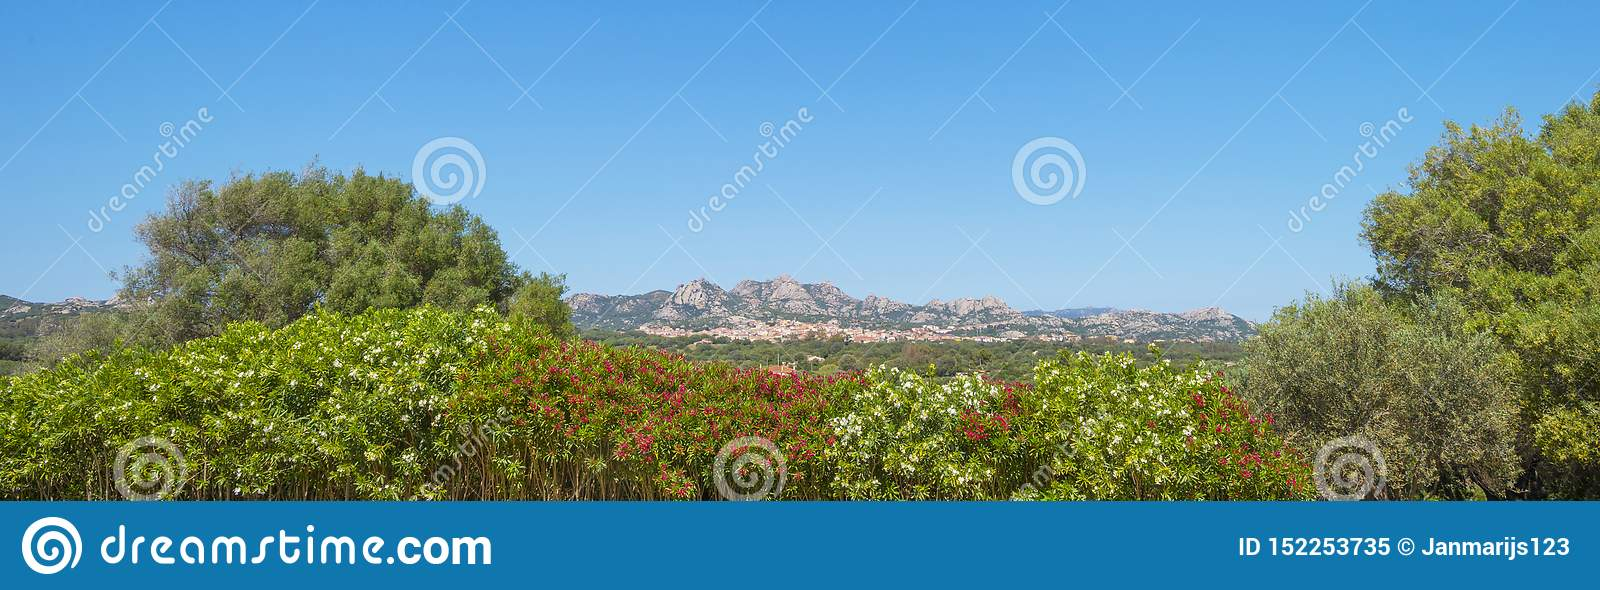 Scenic landscape of green hills and rocky mountains of the island of Sardinia